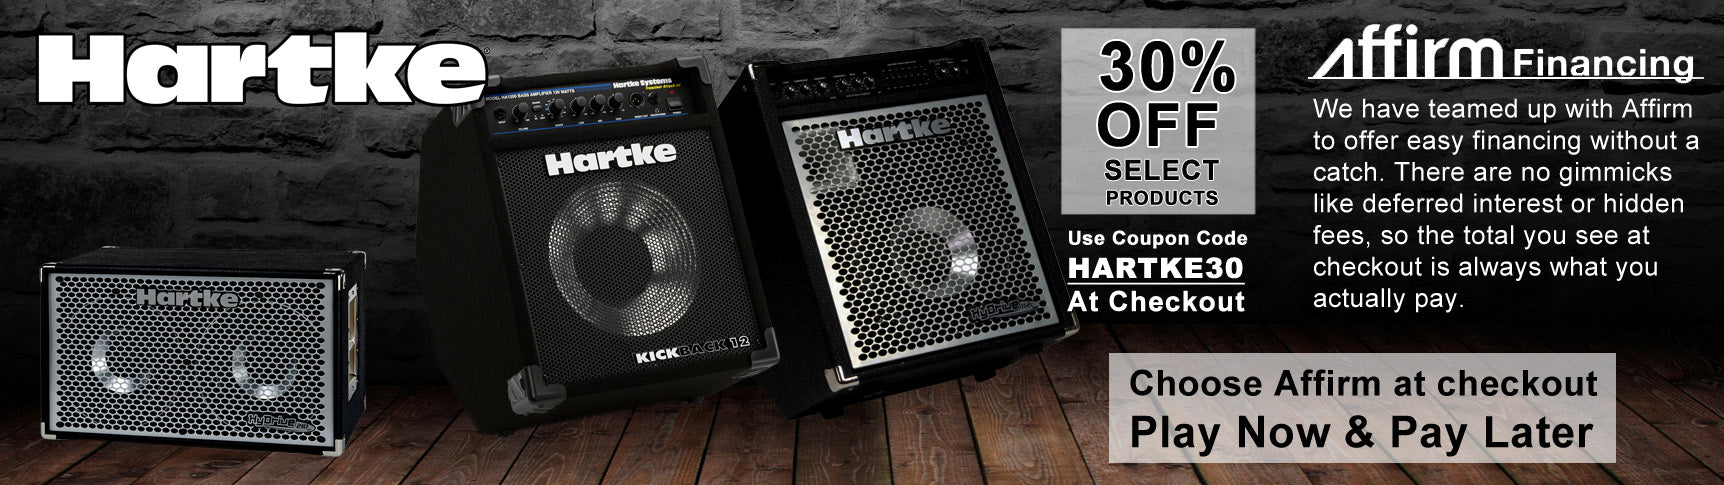 Hartke Holiday Sale